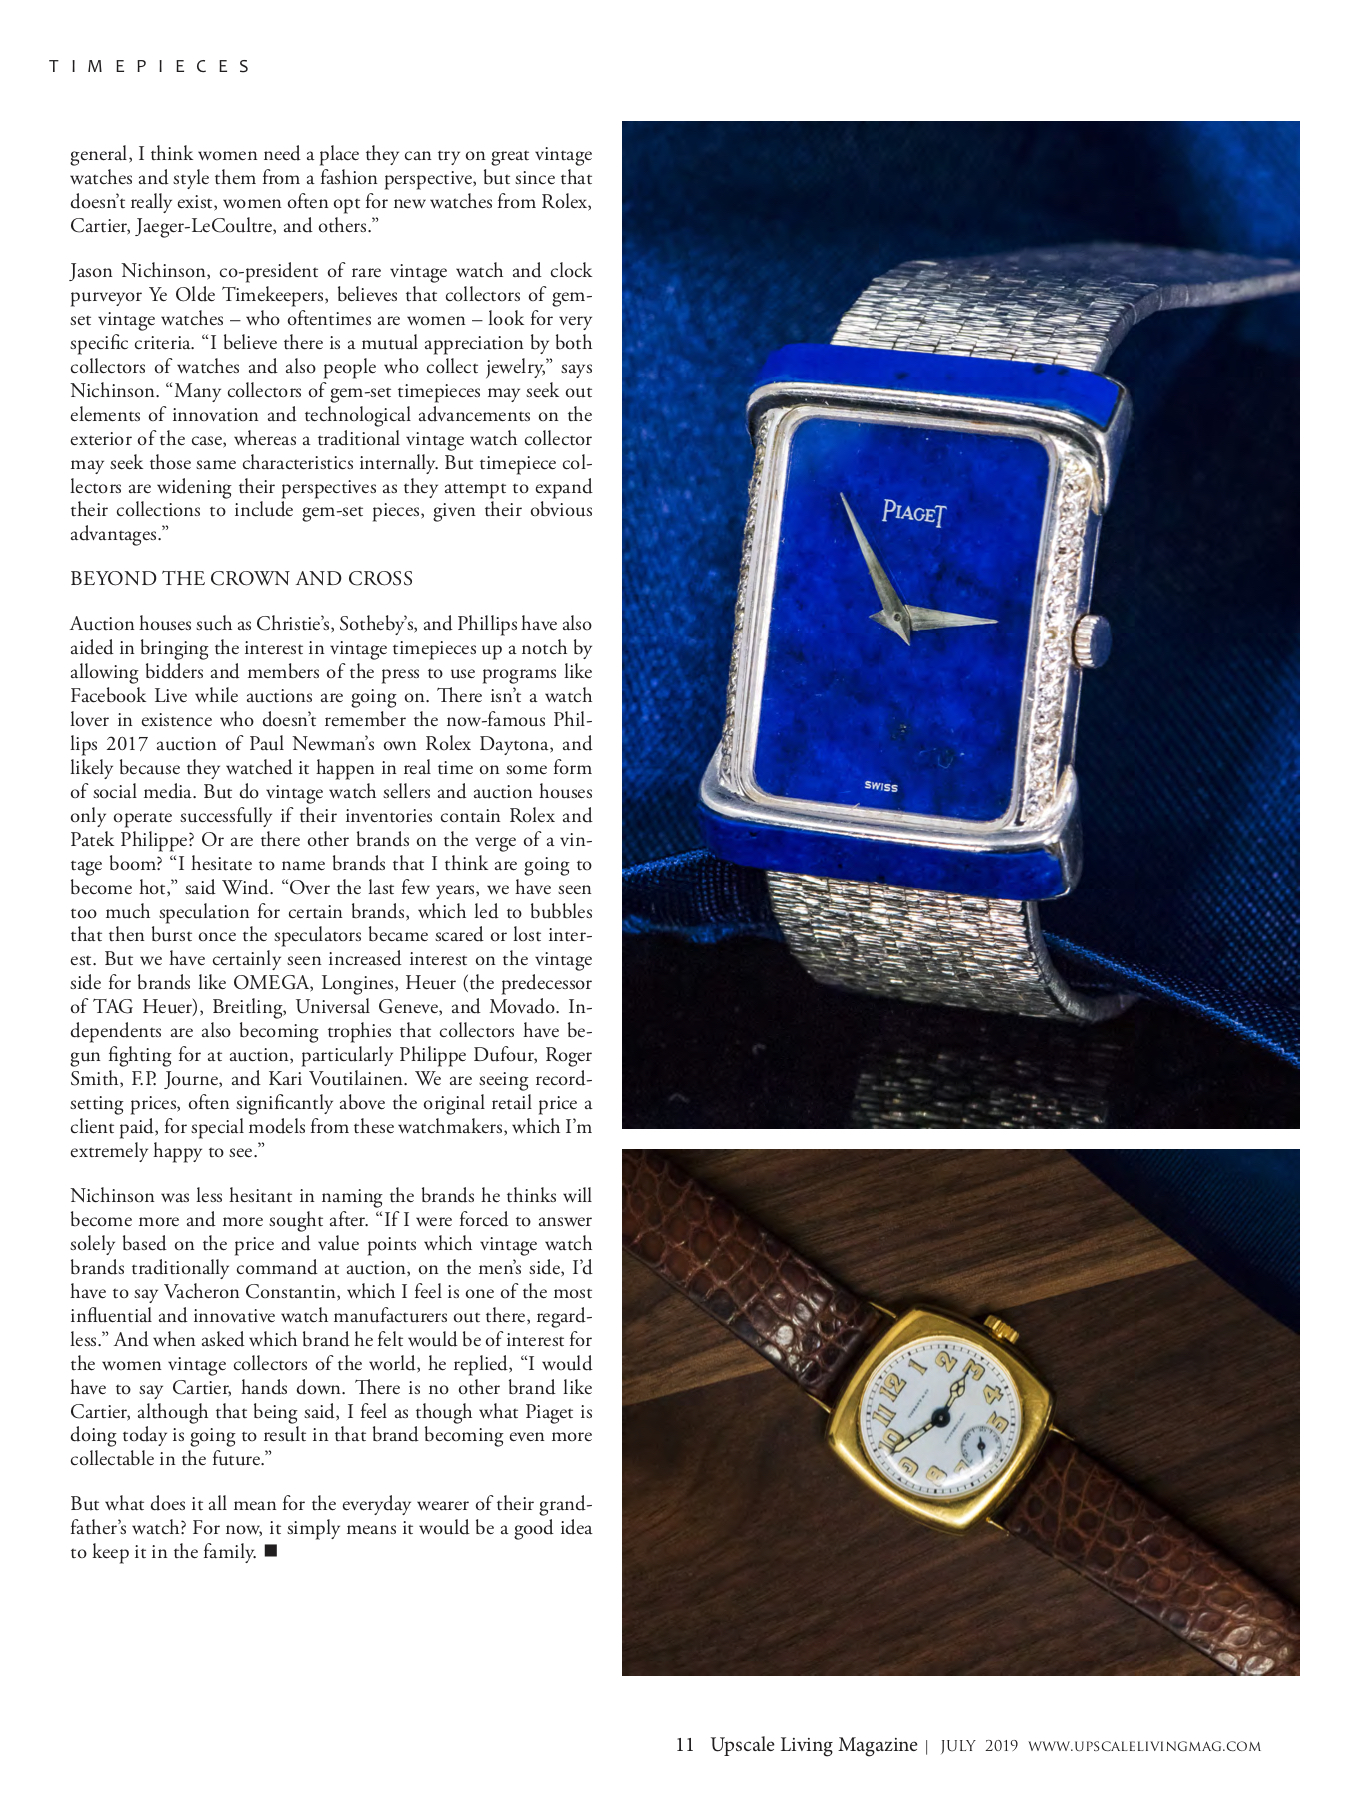 Vintage Watches - JULY 2019 digital - Upscale Living JPEG 2.jpg